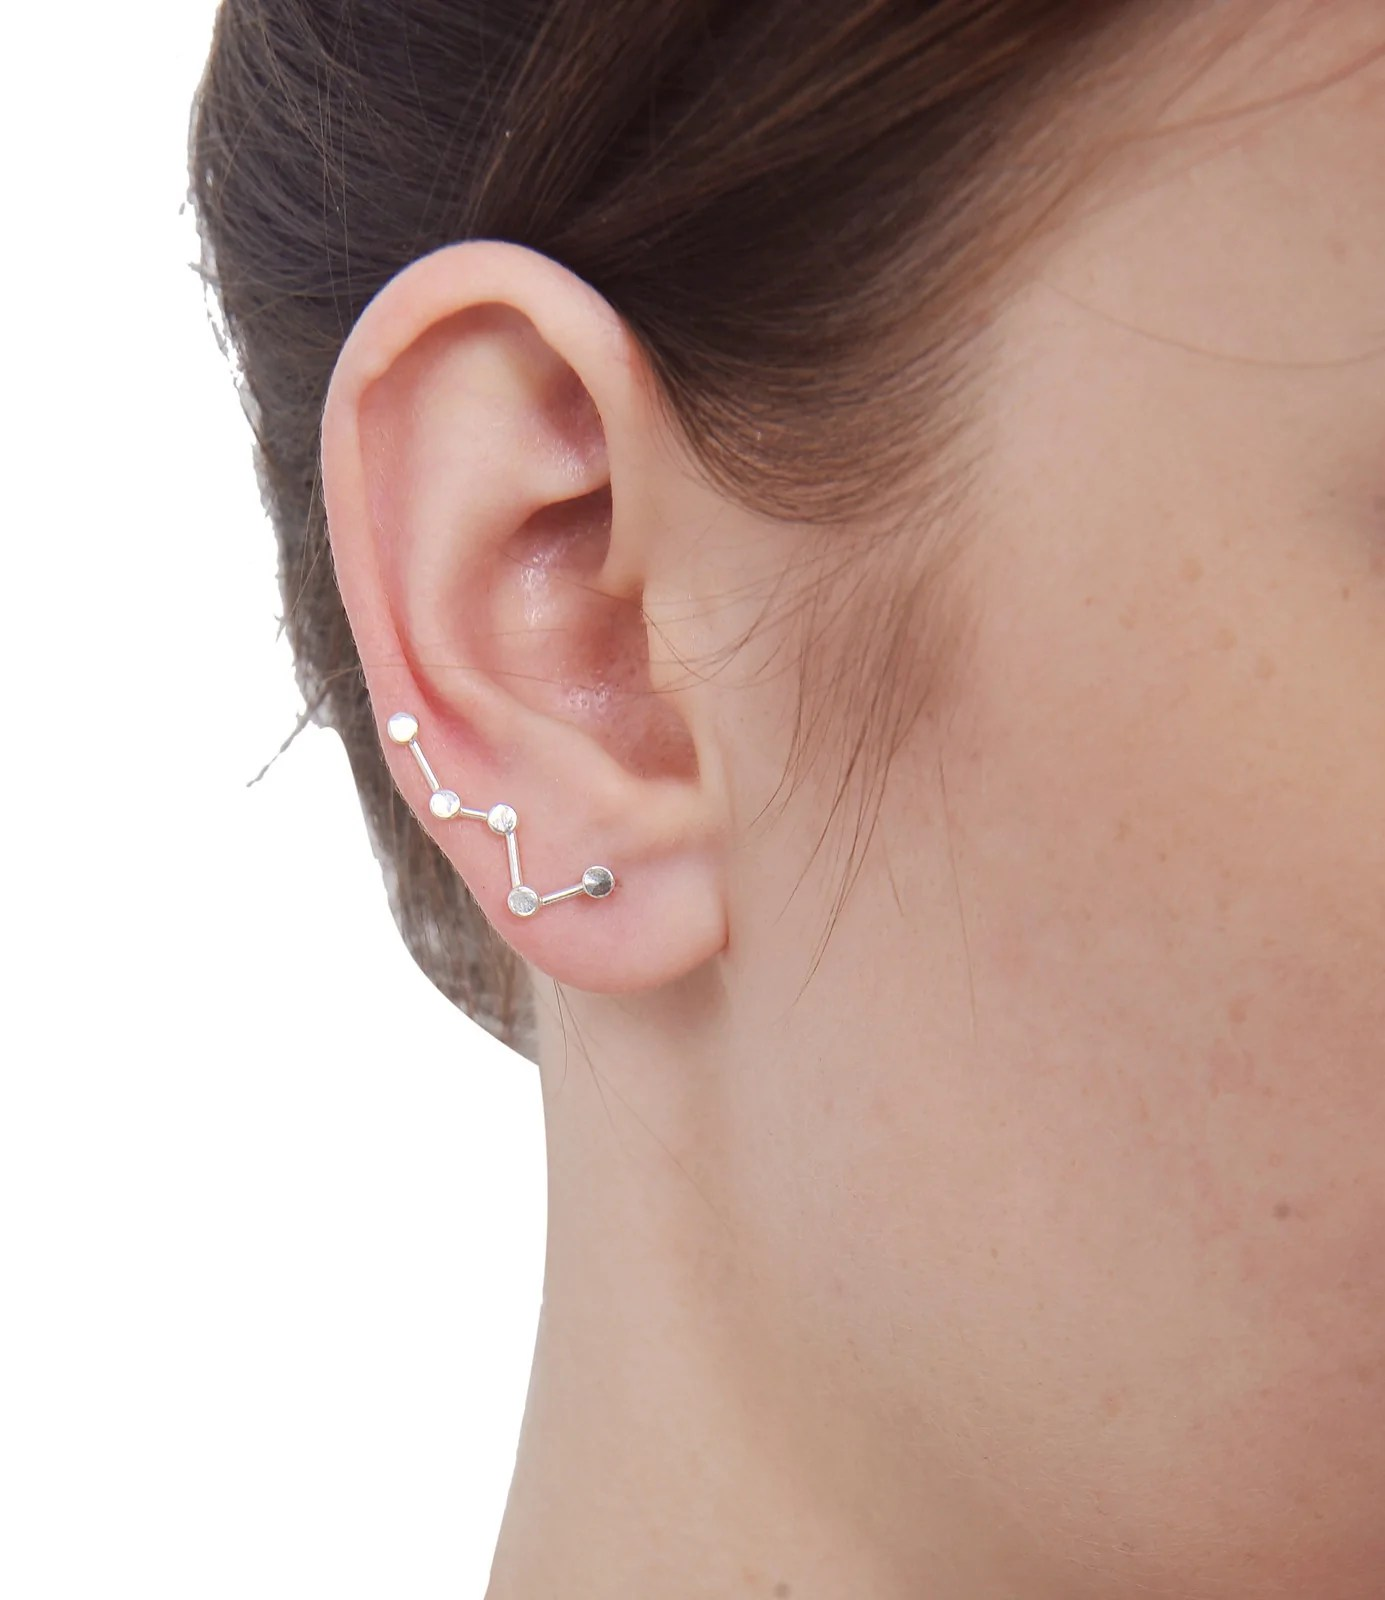 Intriguing Silver Cassiopeia Star Sweep Up Ear Climber Earrings Silver Cassiopeia Star Sweep Up Ear Climber Earrings Ear Climber Earrings Philippines Ear Climber Earrings Ebay wedding rings Ear Climber Earrings